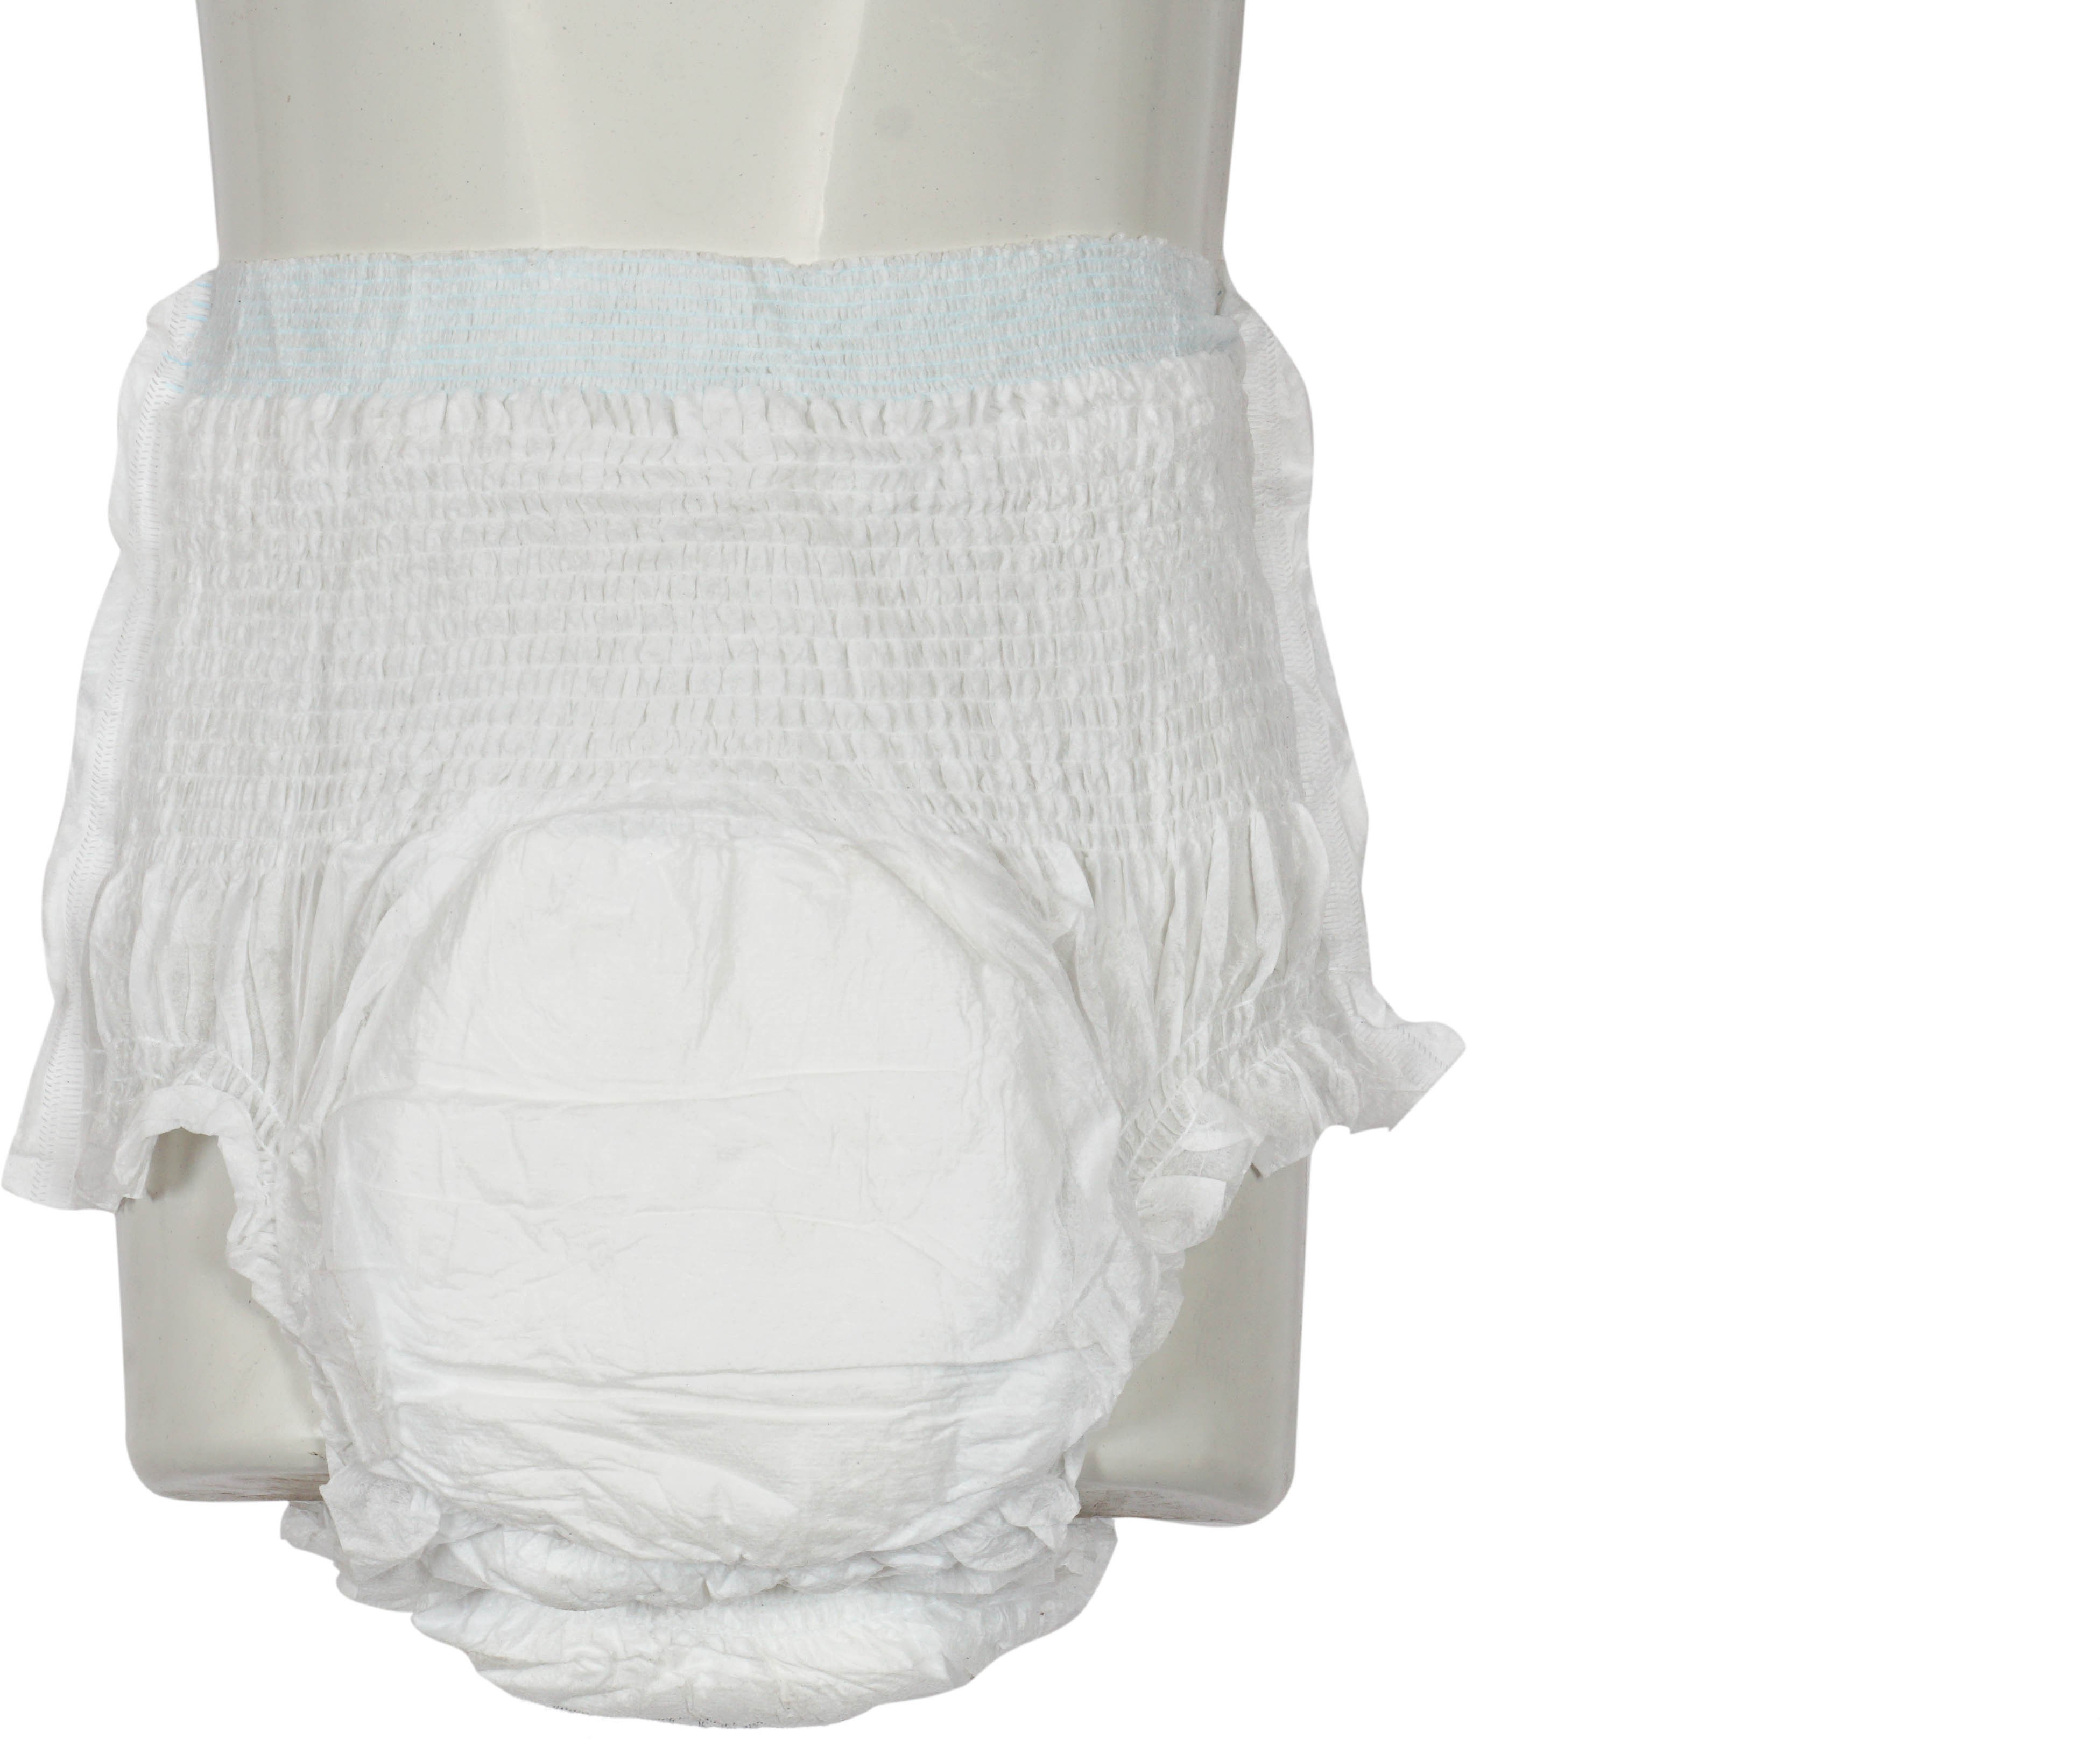 4Best Adult Pull Up Diaper - XL(10 Pieces)